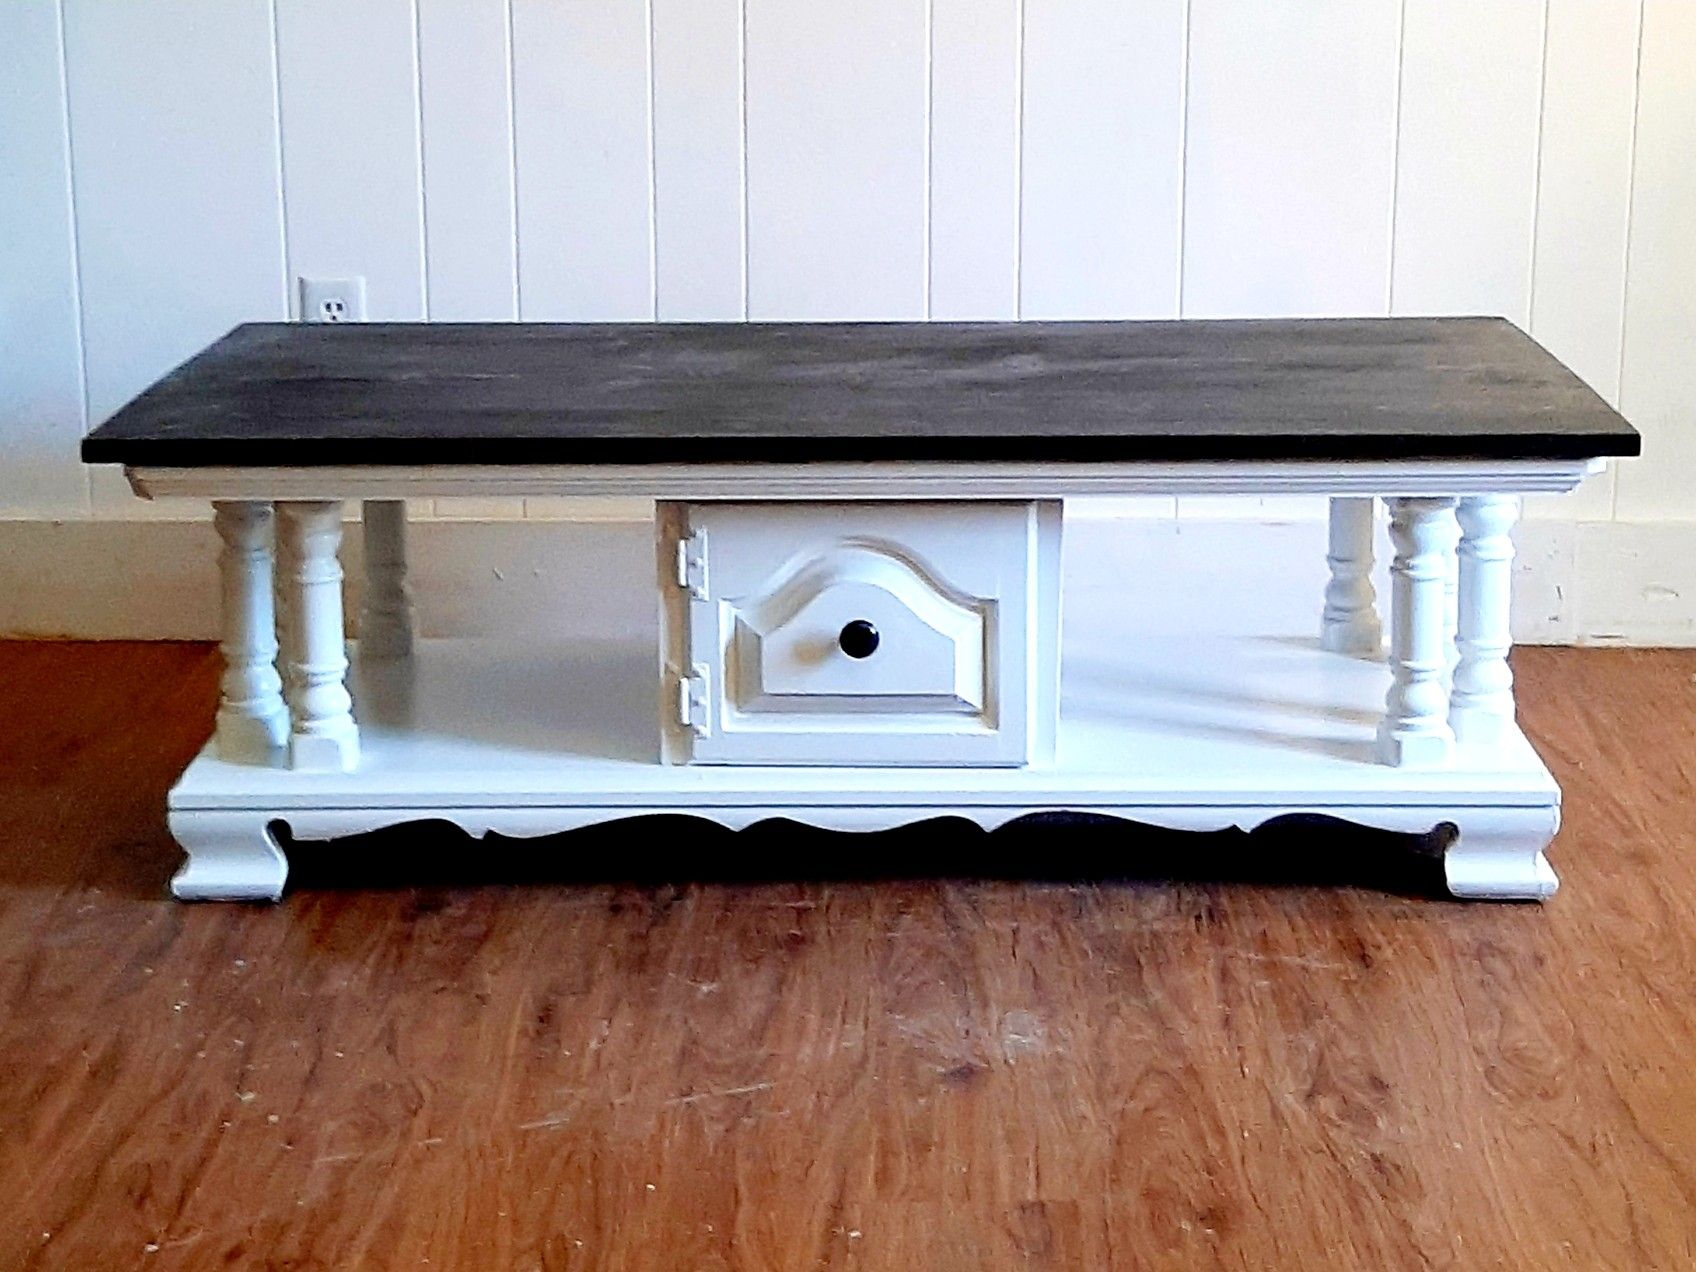 Vintage Coffee Table Makeover White With Black Stained Plank Top 2020 Coffee Table Vintage Coffee Table Makeover My Furniture [ 1272 x 1696 Pixel ]